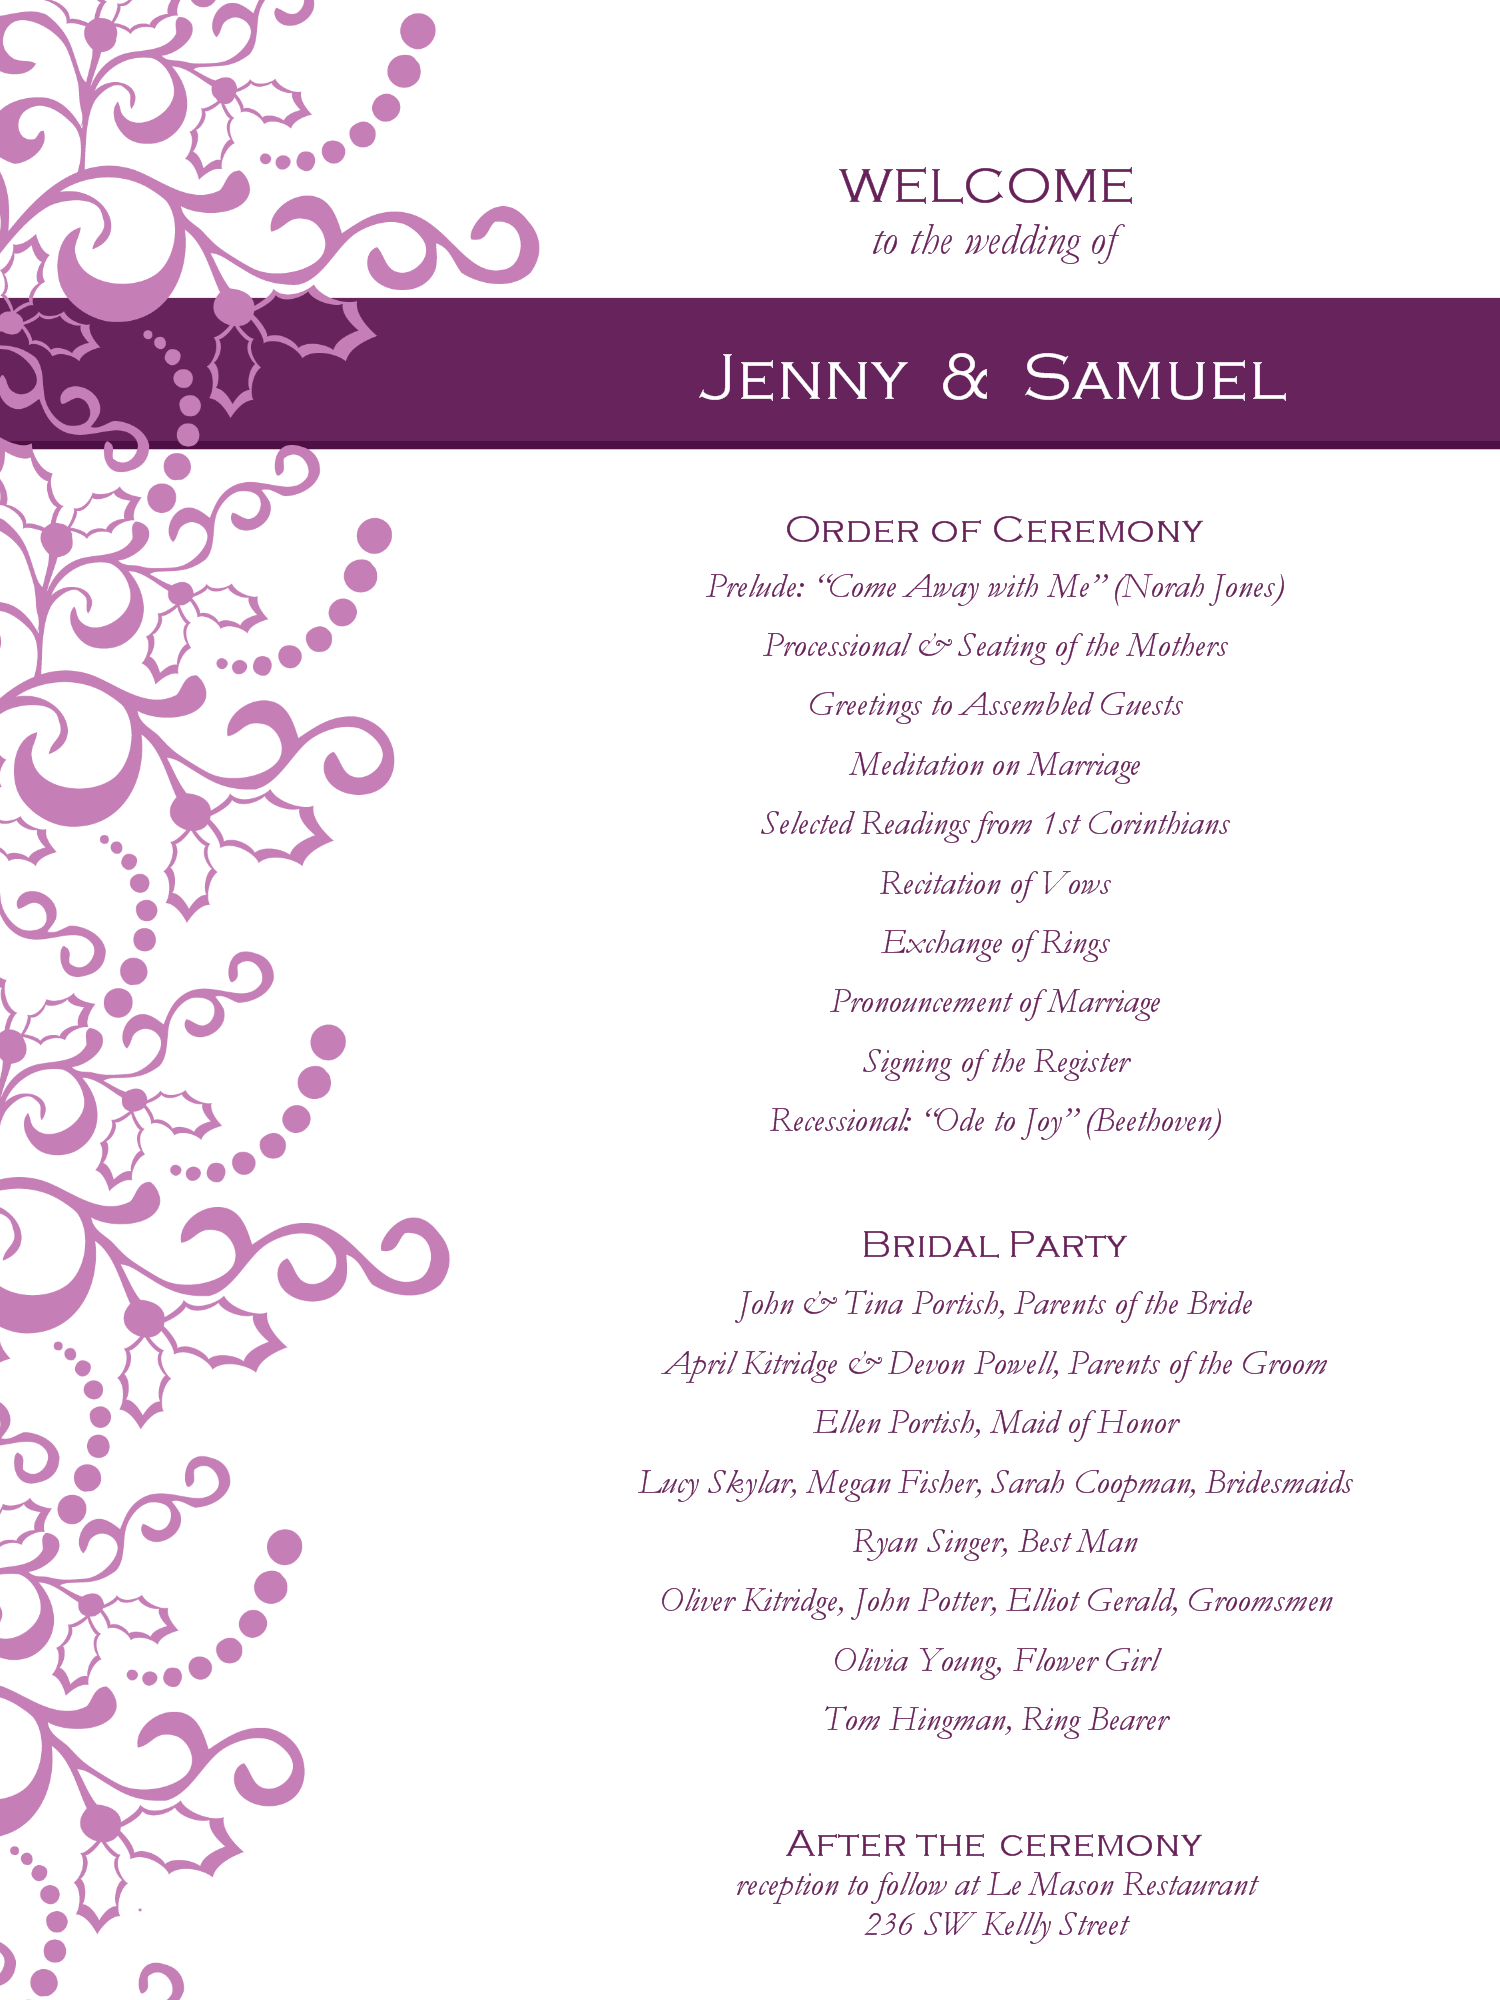 wedding program templates weddingclipart com wedding wedding program templates weddingclipart com